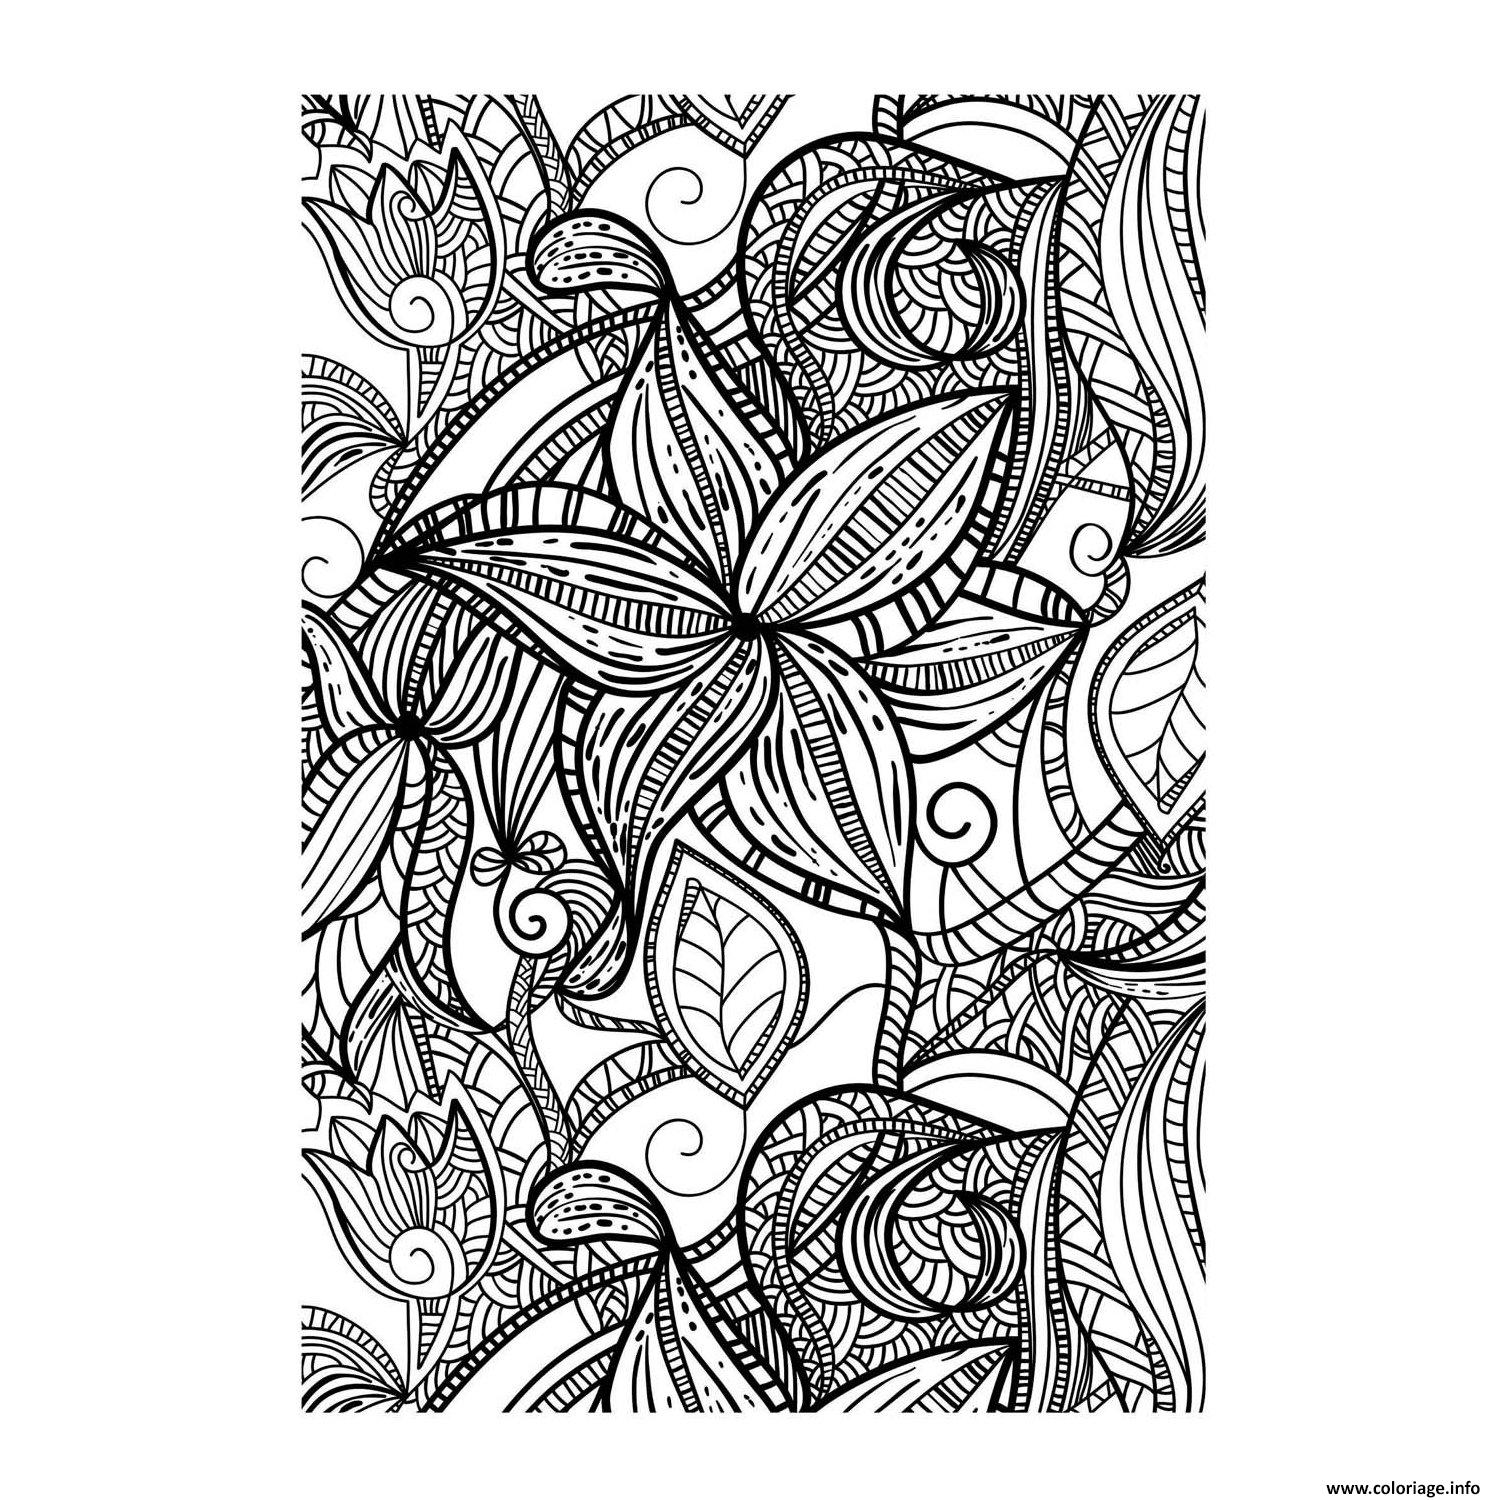 Coloriage art therapie 58 dessin - Coloriage art ...